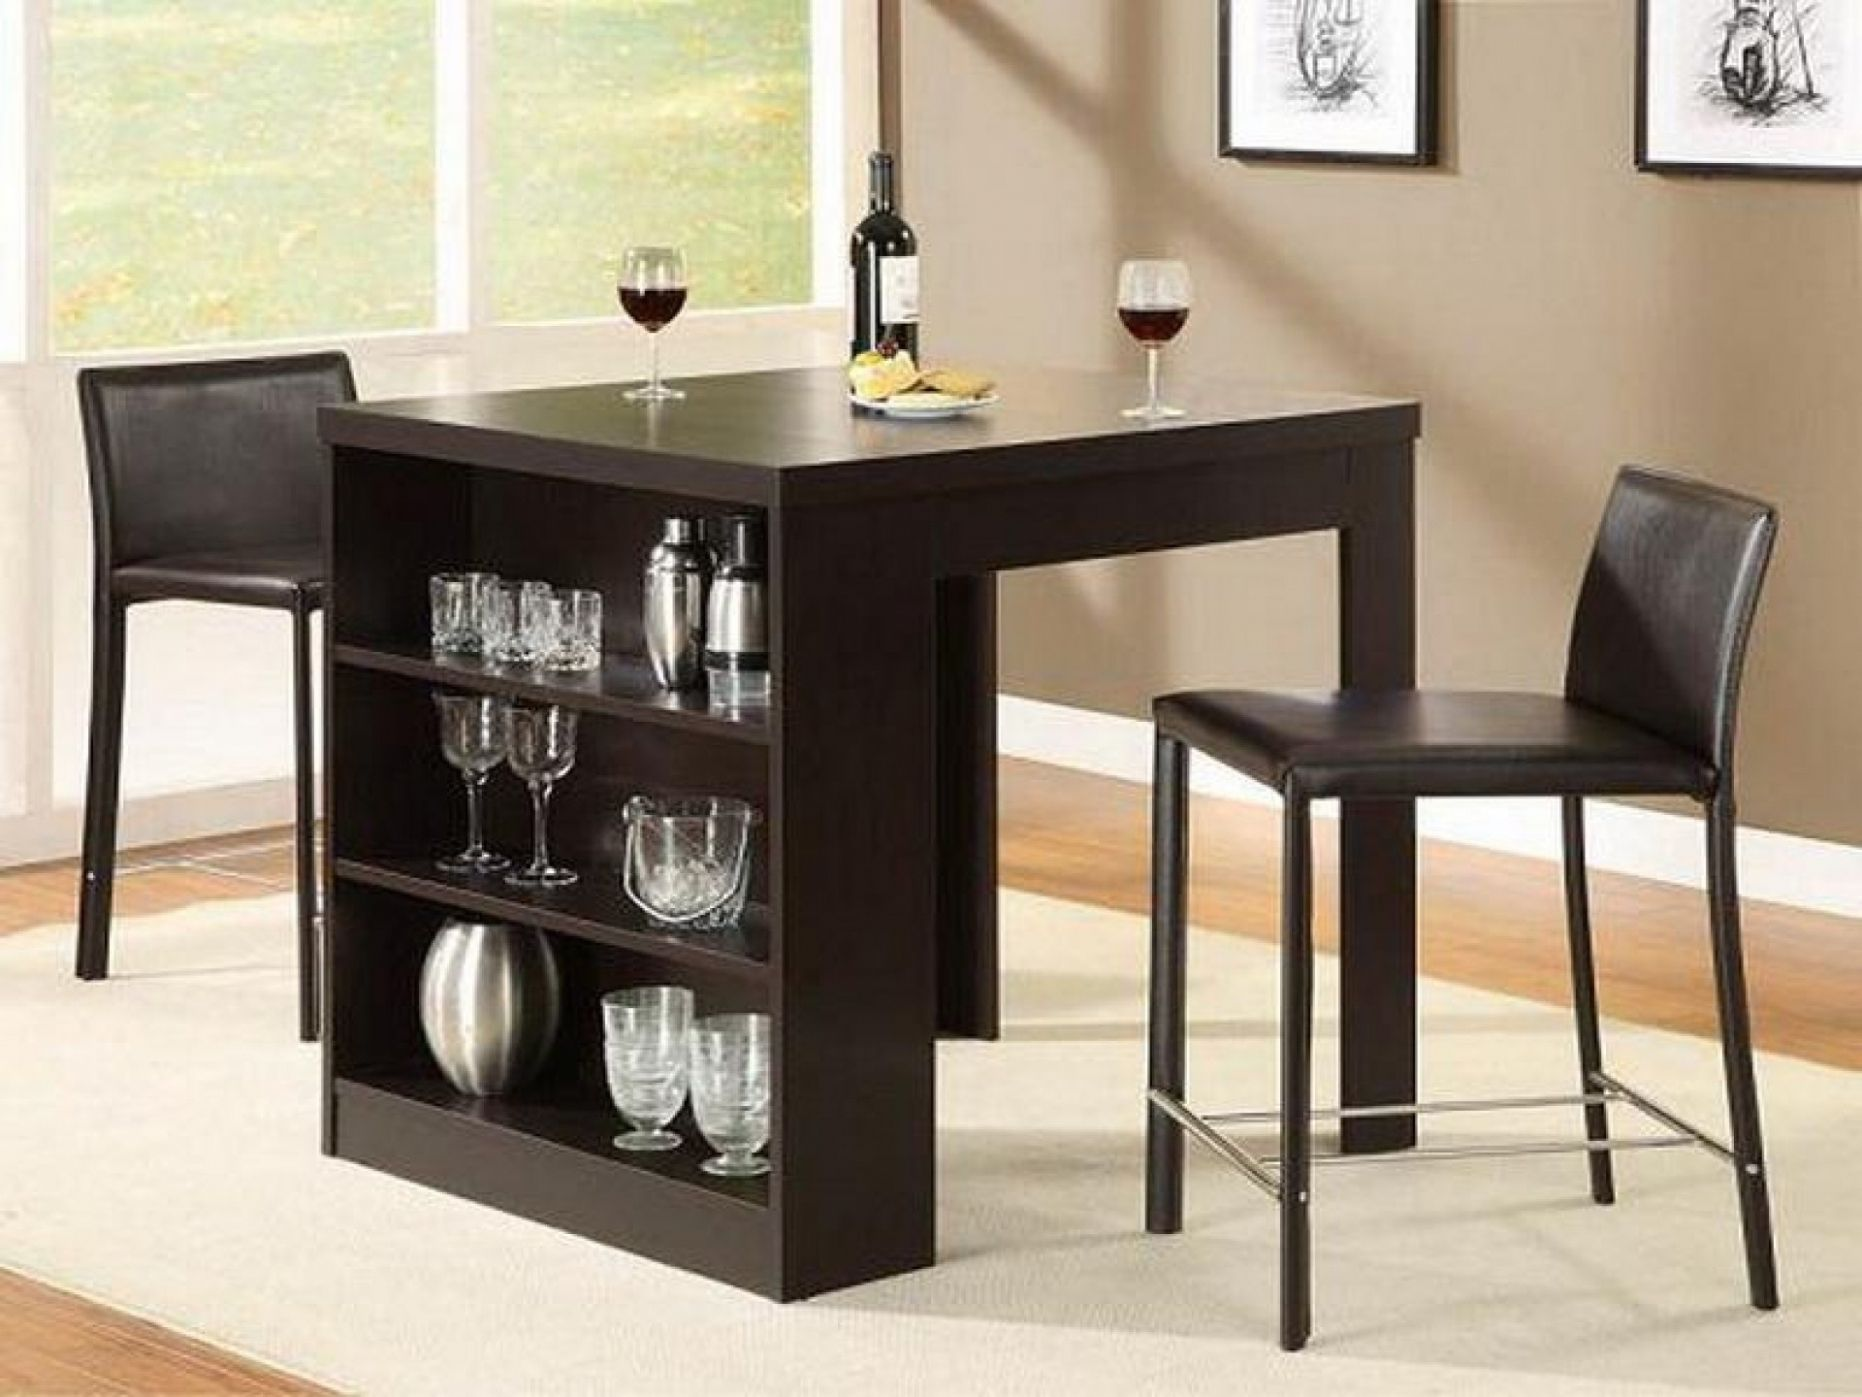 small dining room sets for small spaces. 70+ Stunning Pottery Barn For Small Spaces Ideas \u2014 Fres Hoom. Counter Height TableCounter TopSmall Dining Room Sets O